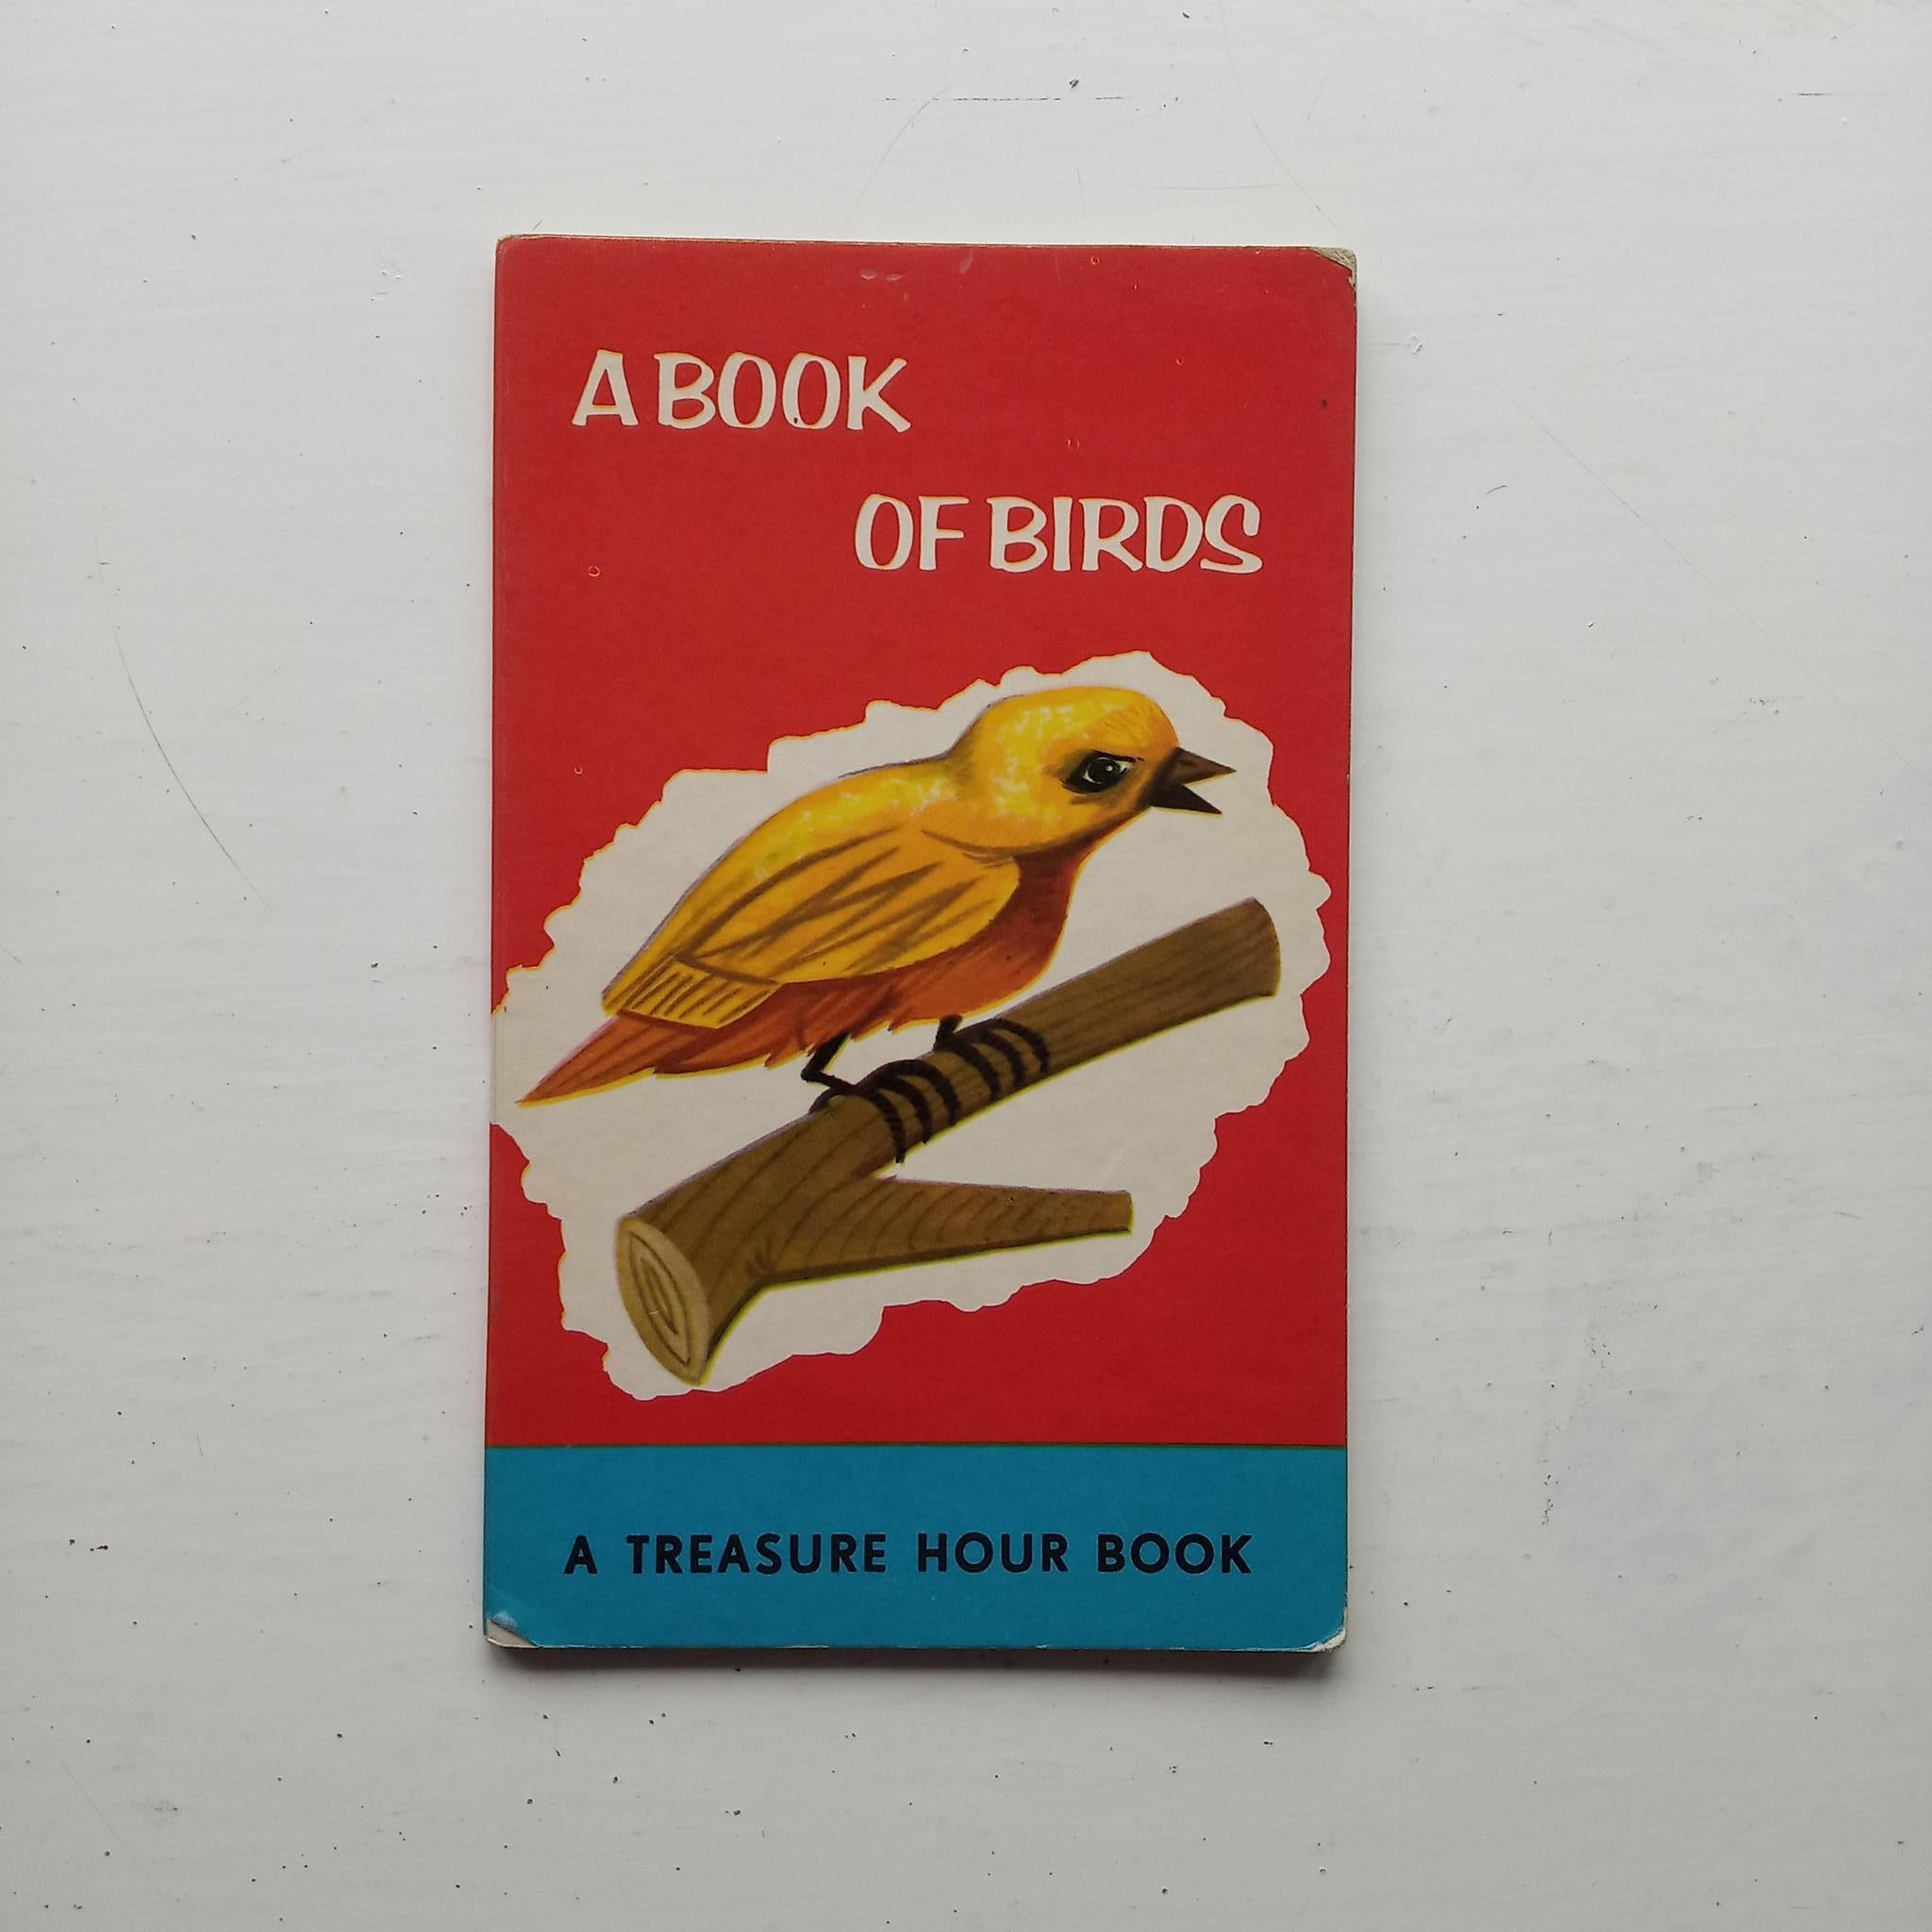 A Book of Birds by Uncredited